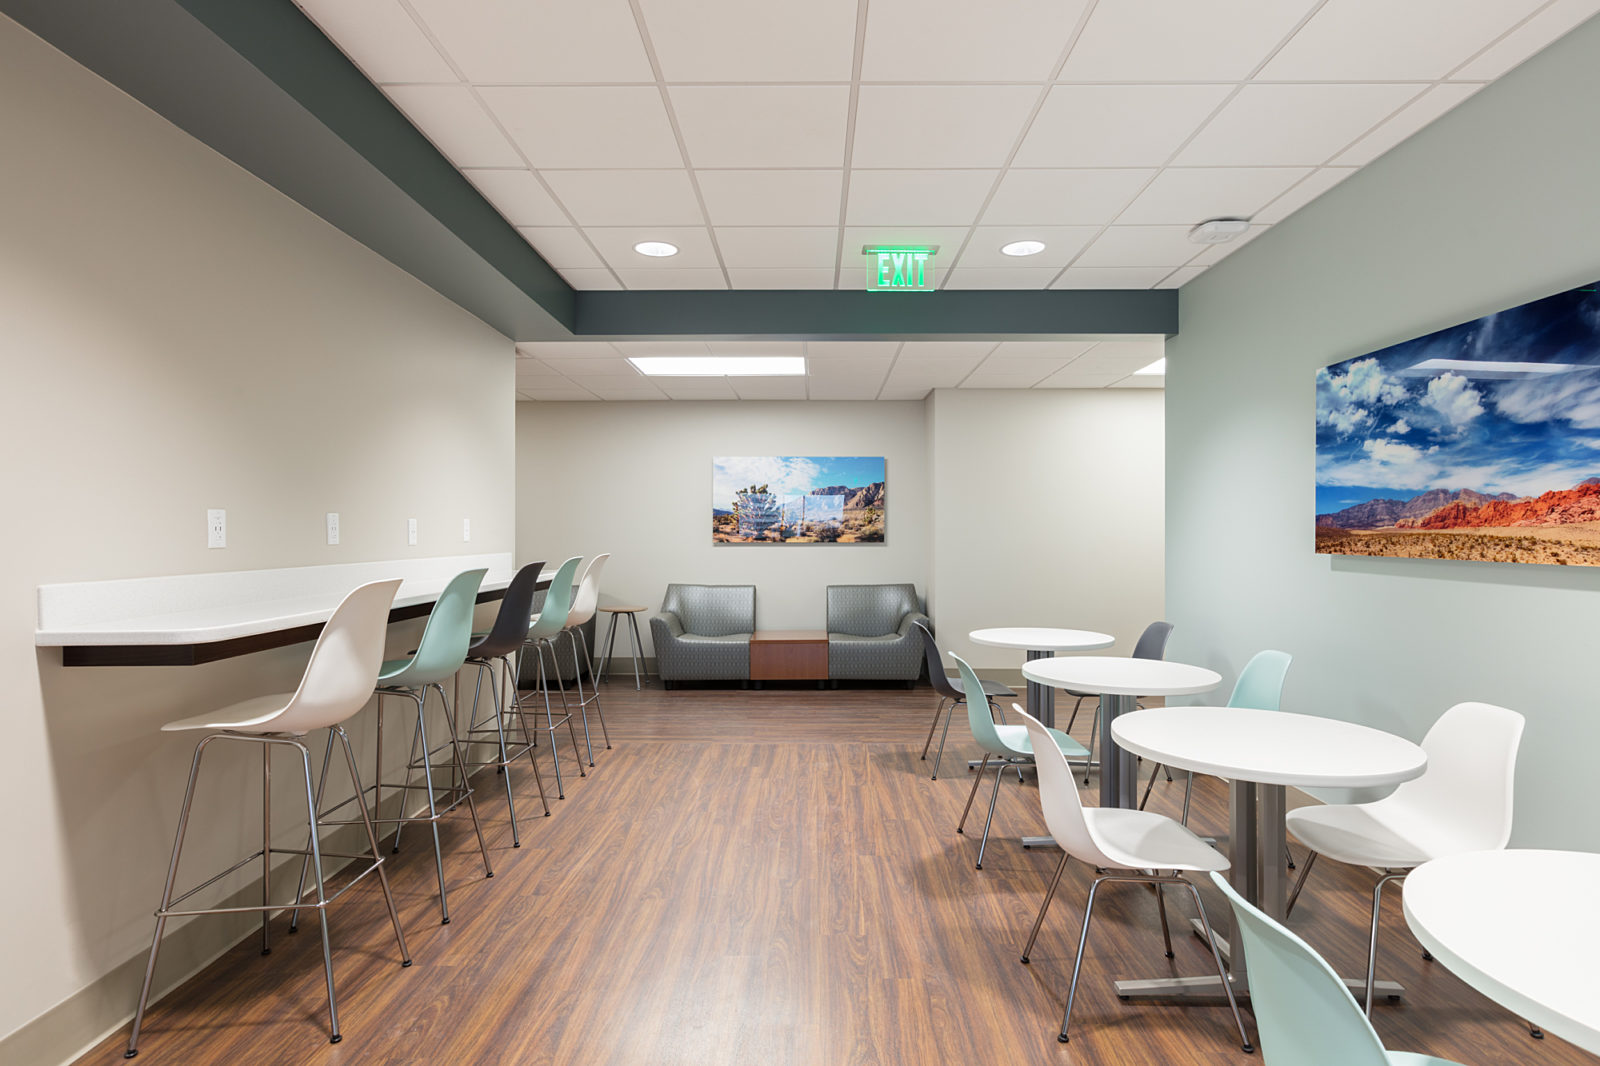 MTN View Healthcare 5